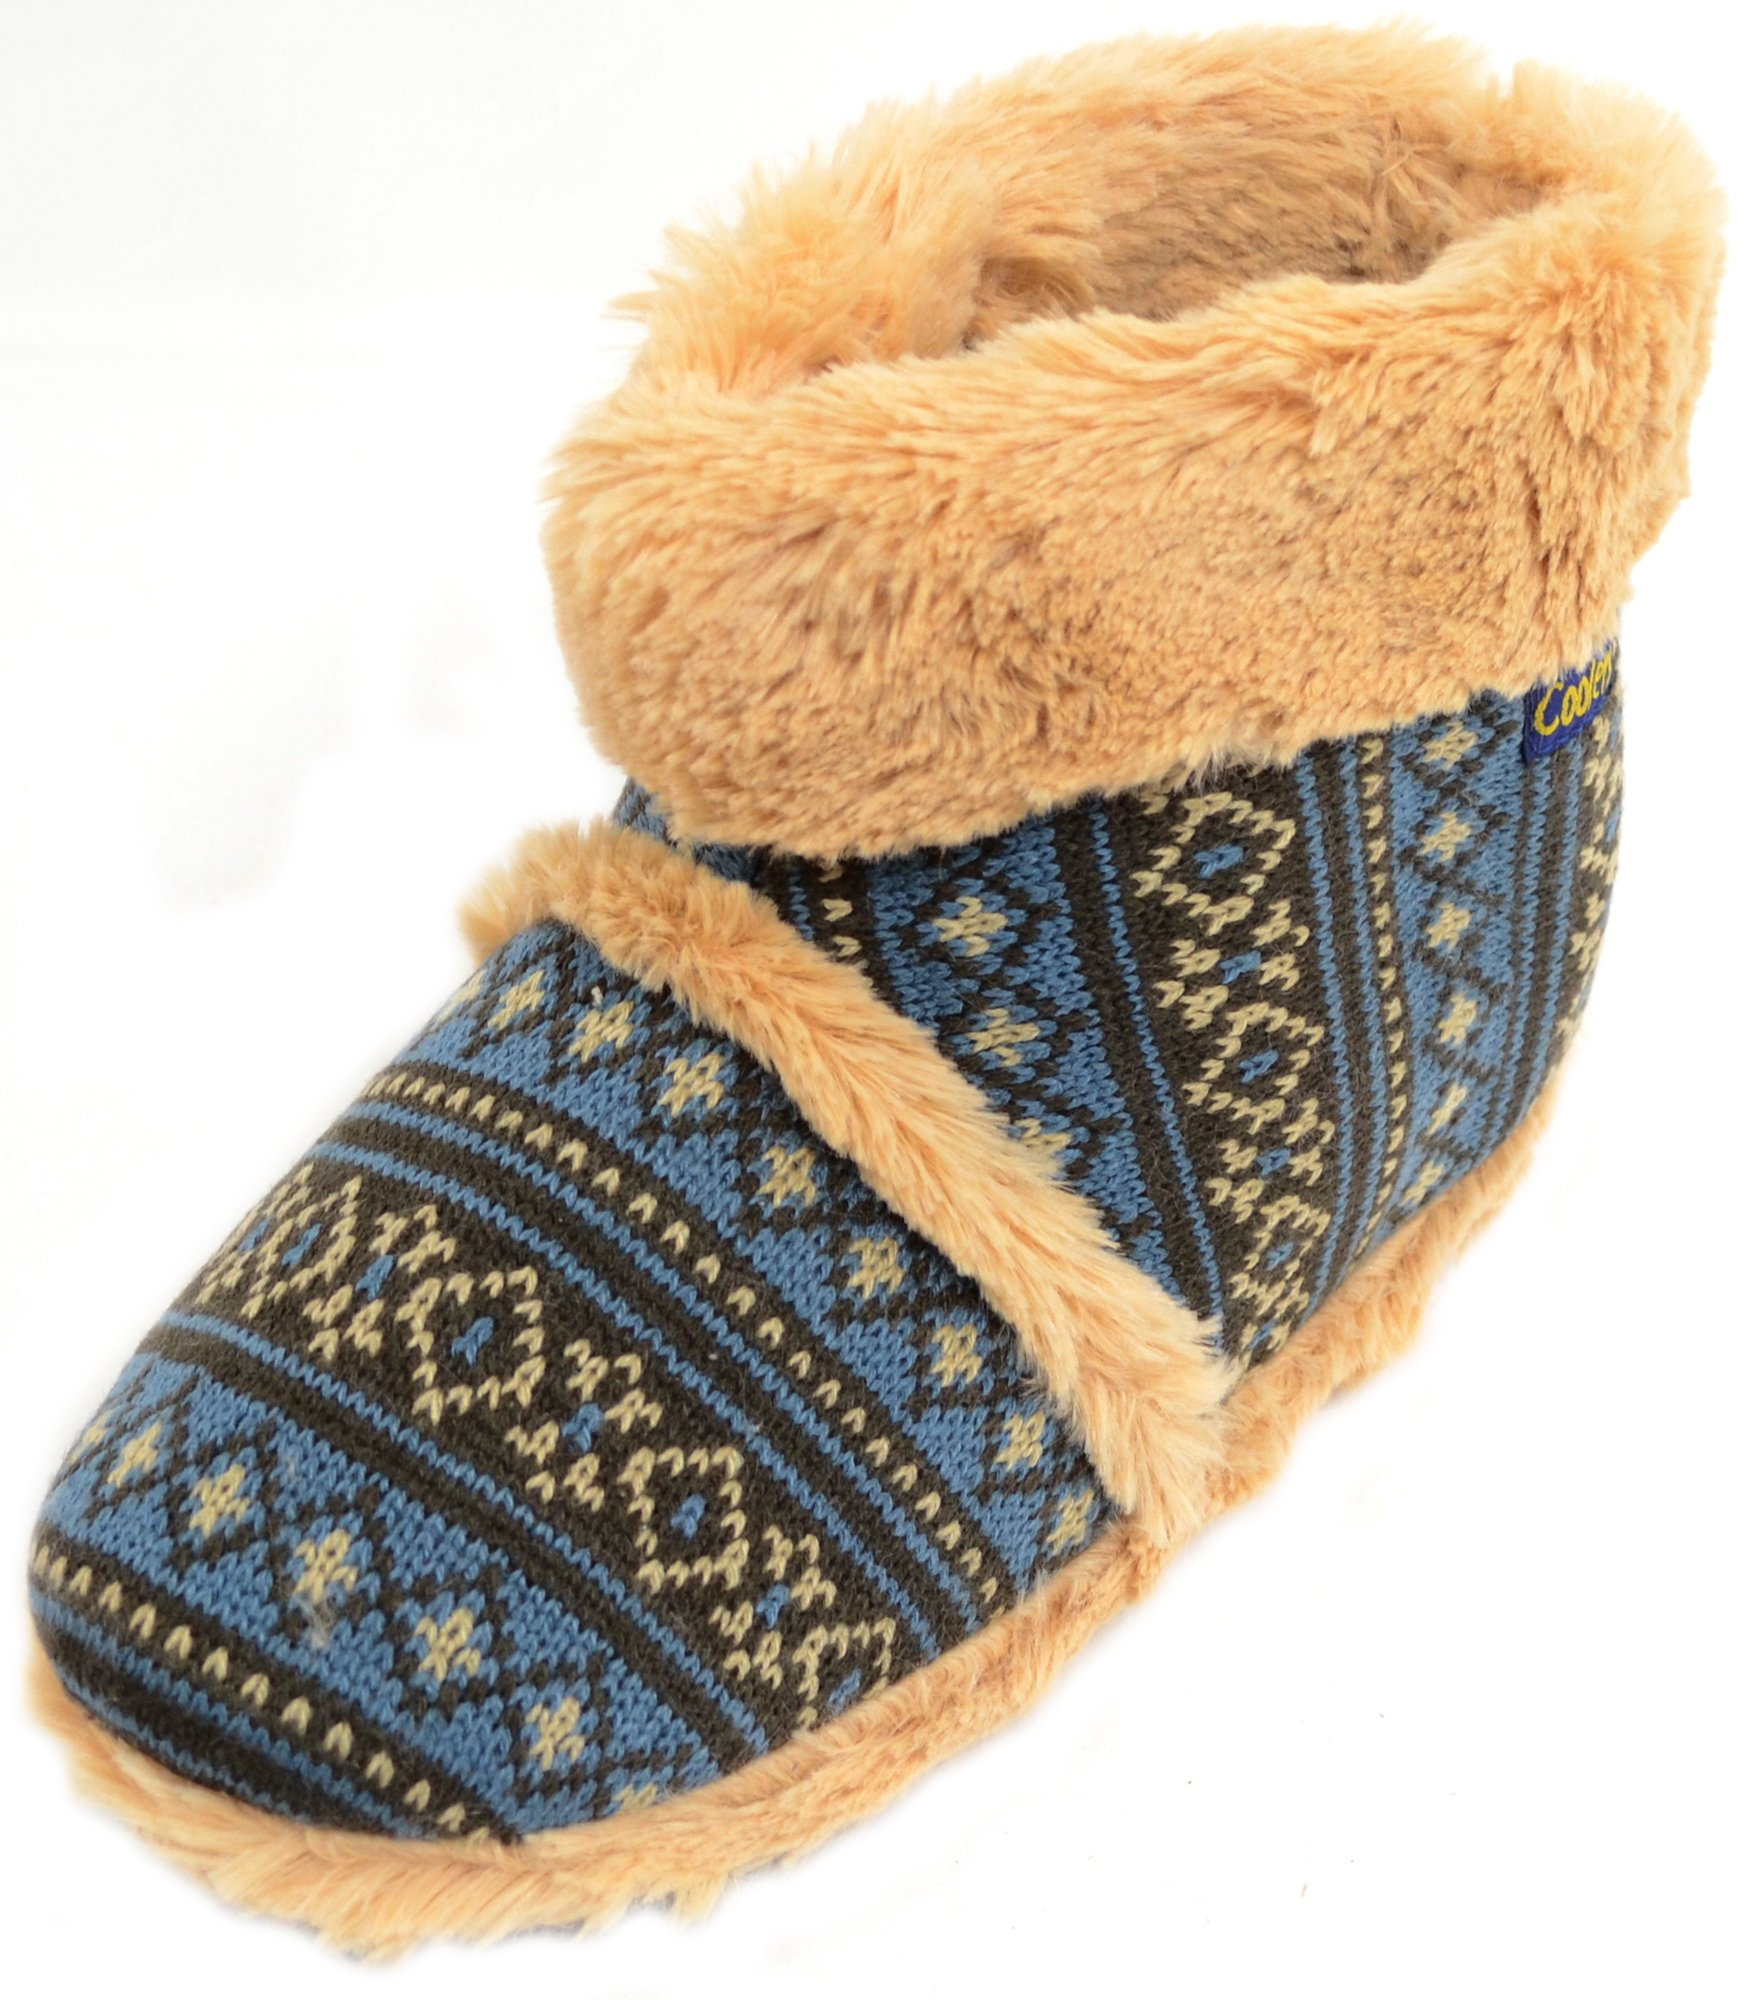 Mens Knitted Style Slipper Boots / Booties with Warm Faux Fur Lining and Cuff - Blue - 10 US